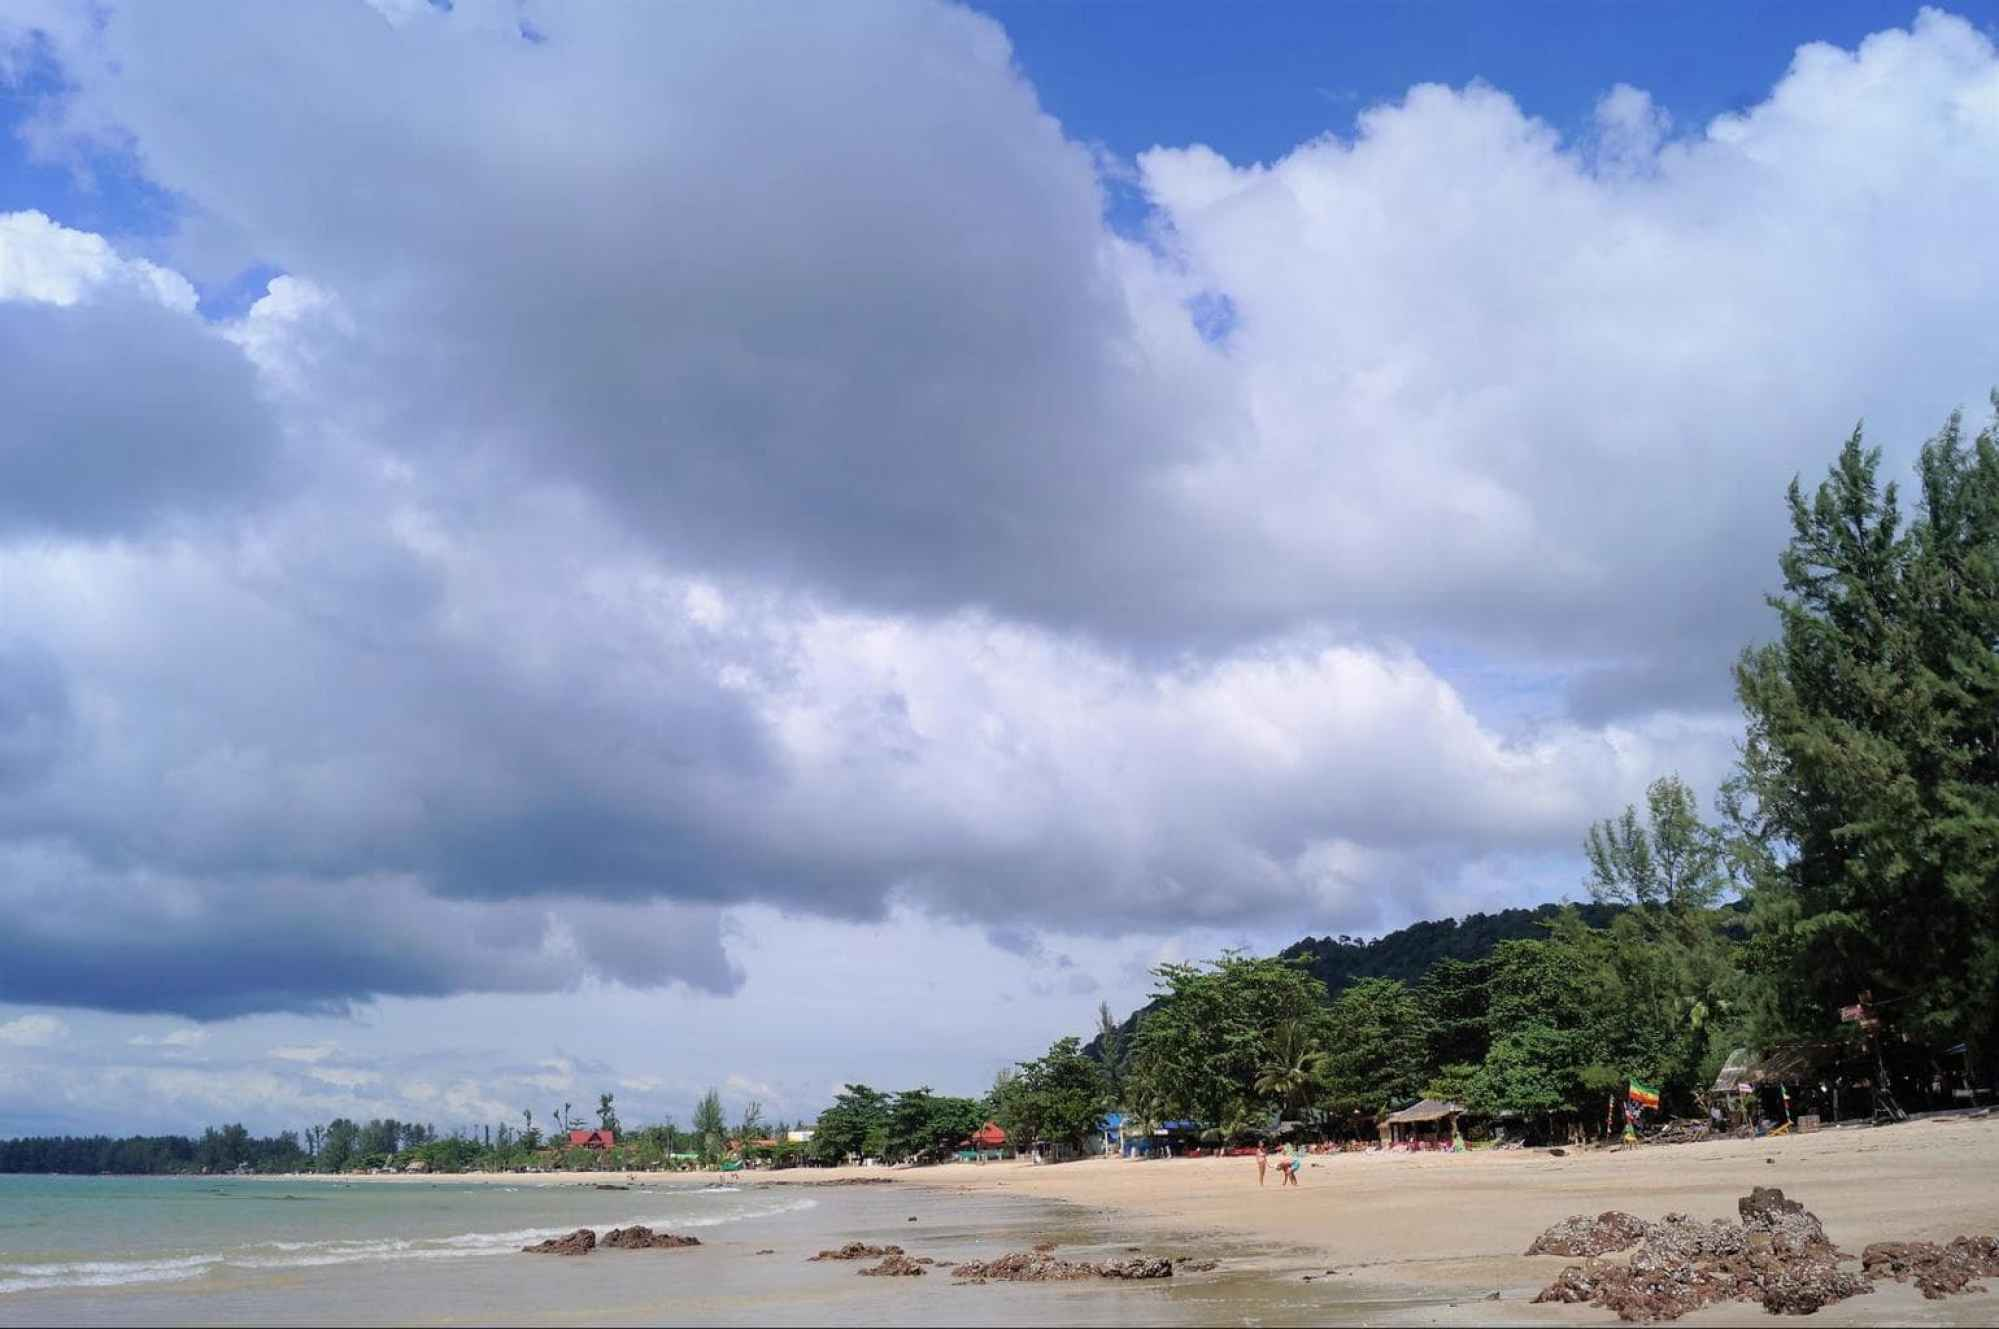 Klong Dao Beach, one of the best beaches in Thailand